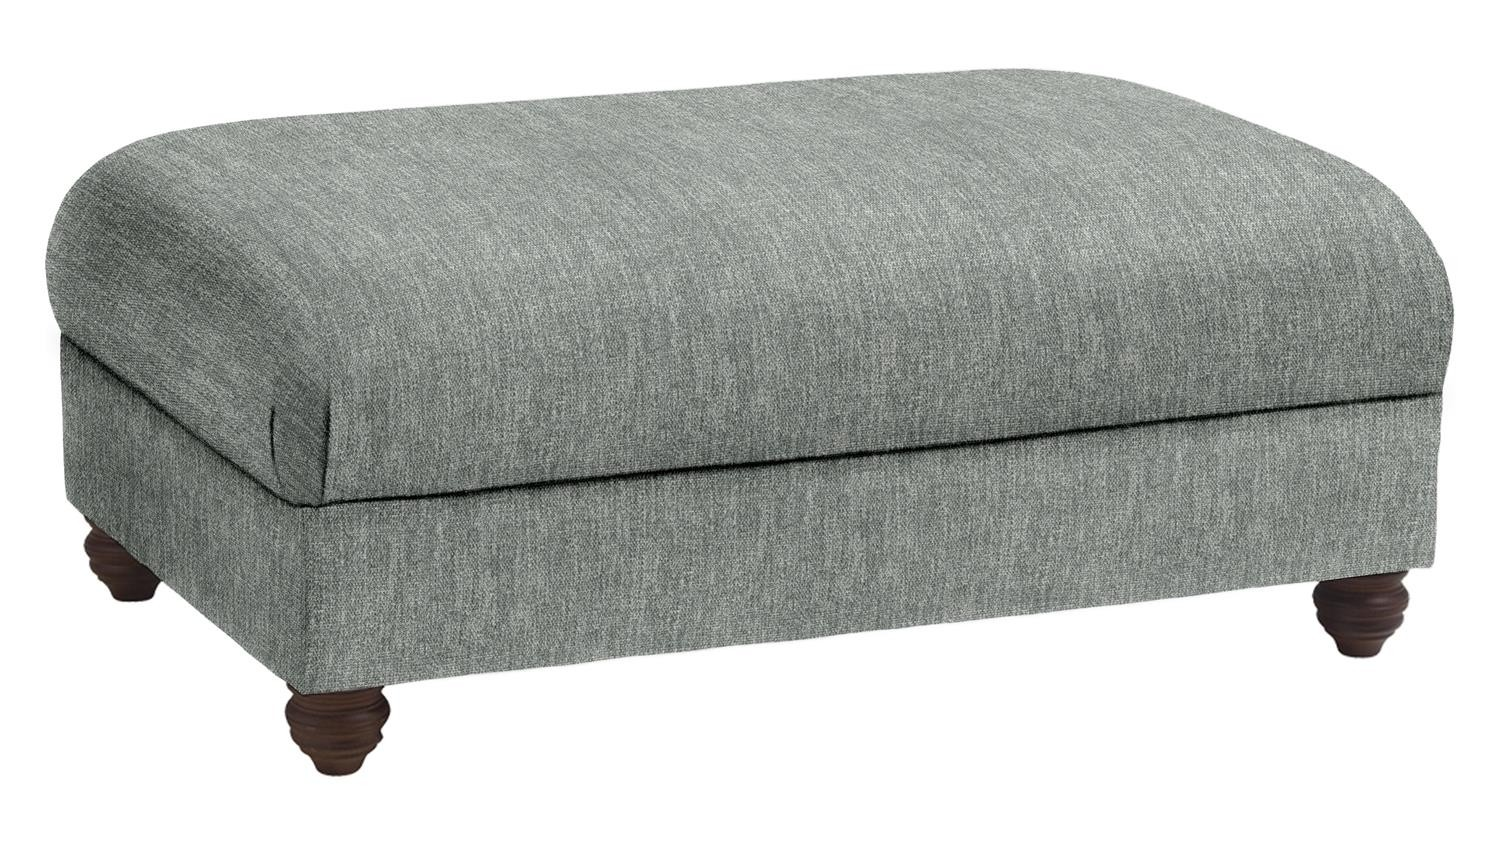 The Cadley Large Footstool